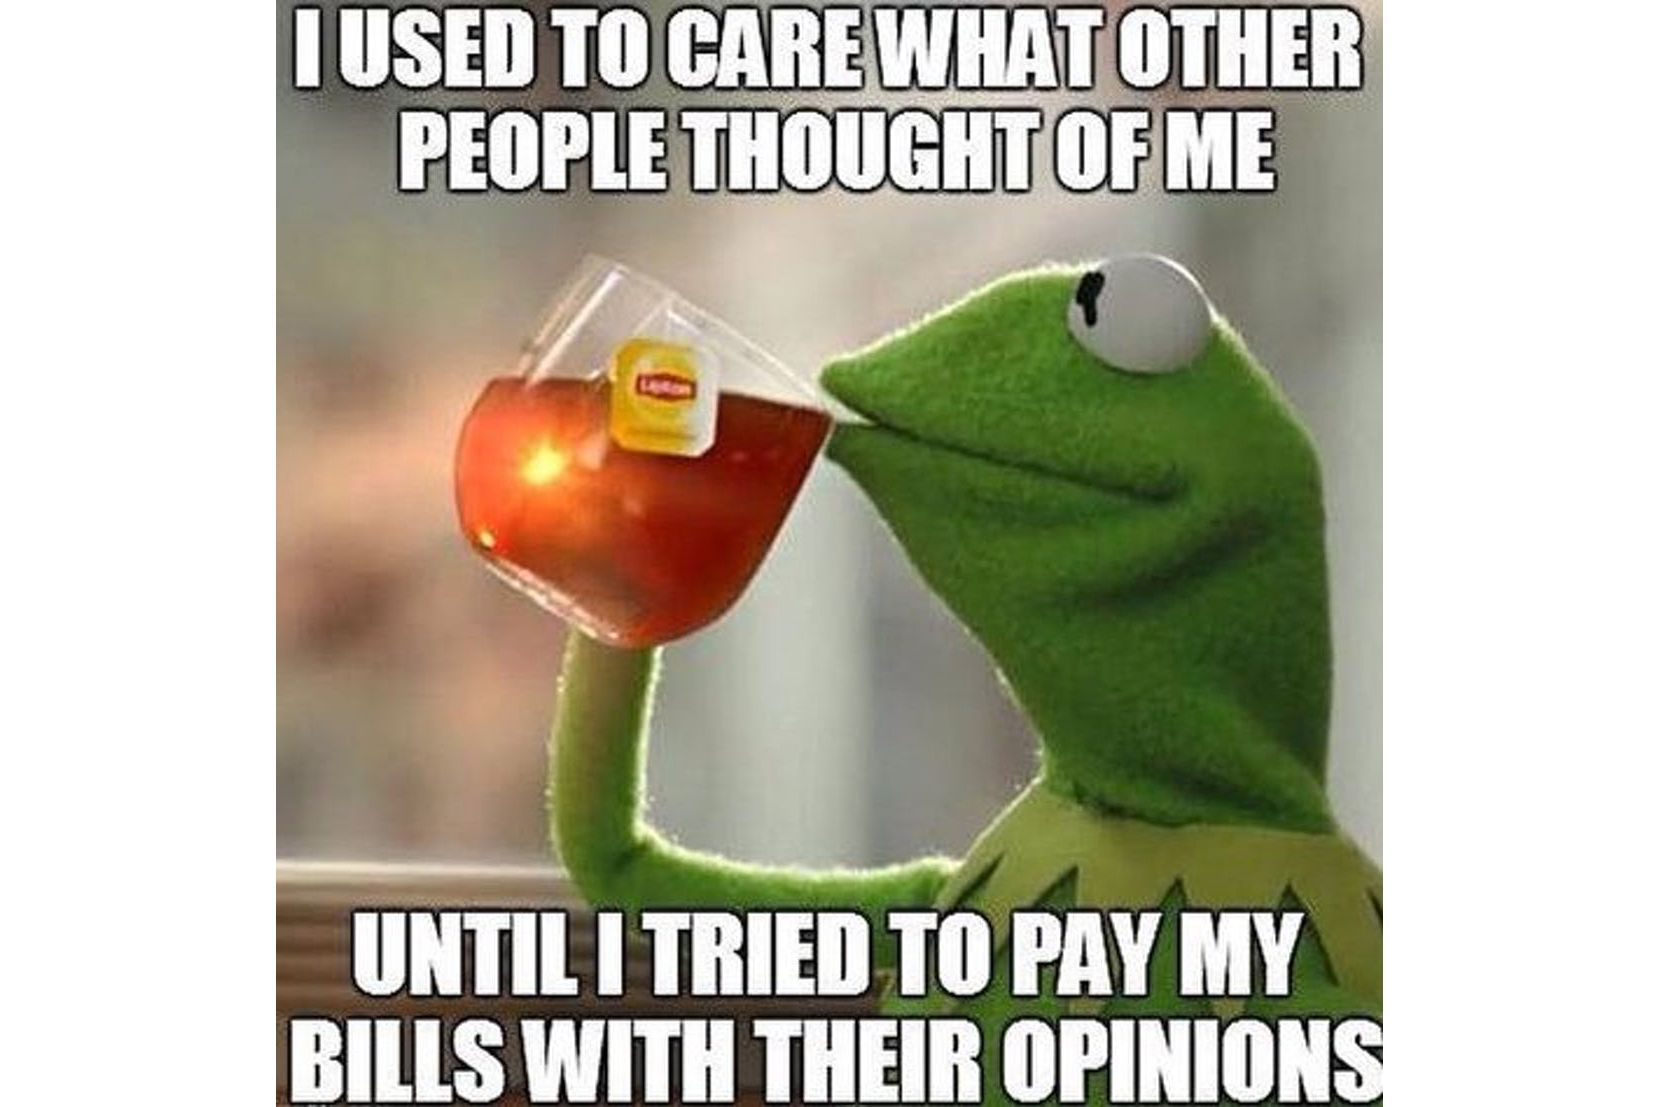 Kermit drinking tea: I use to care what other people thought of me. Until I tried to pay my bills with their opinions.